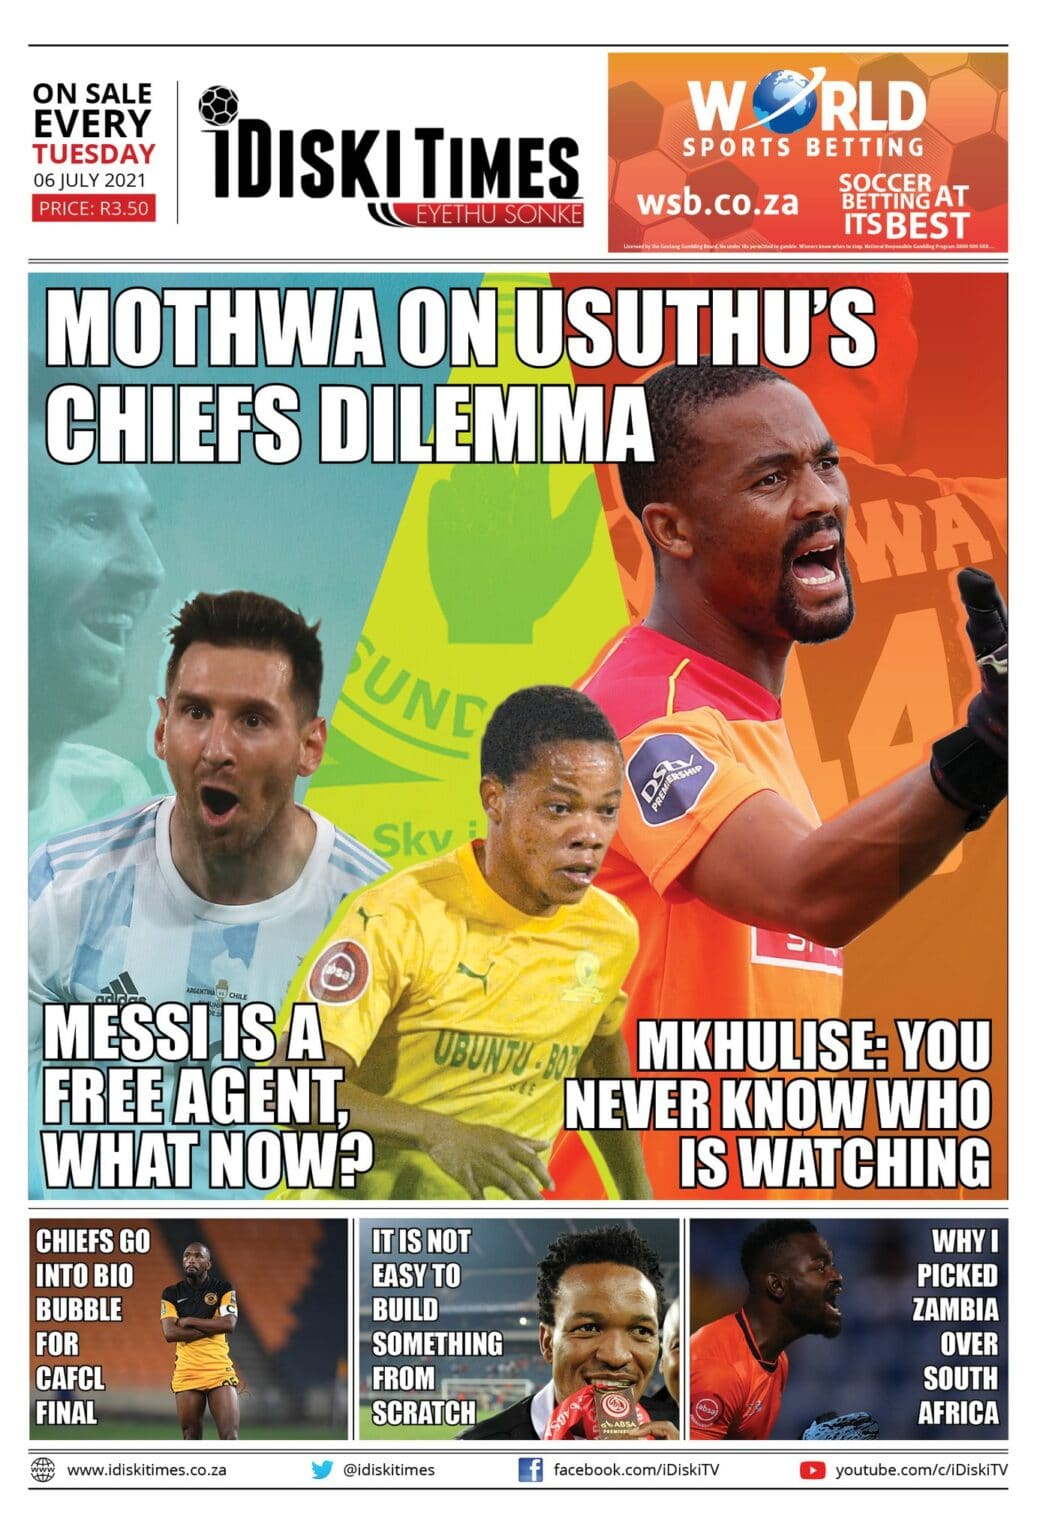 Sep 25, 2021· the former orlando pirates marksman had a quiet afternoon and it was not a surprise that he was substituted in the 63rd minute. iDiski Times Edition 27 Out Now! - iDiski Times